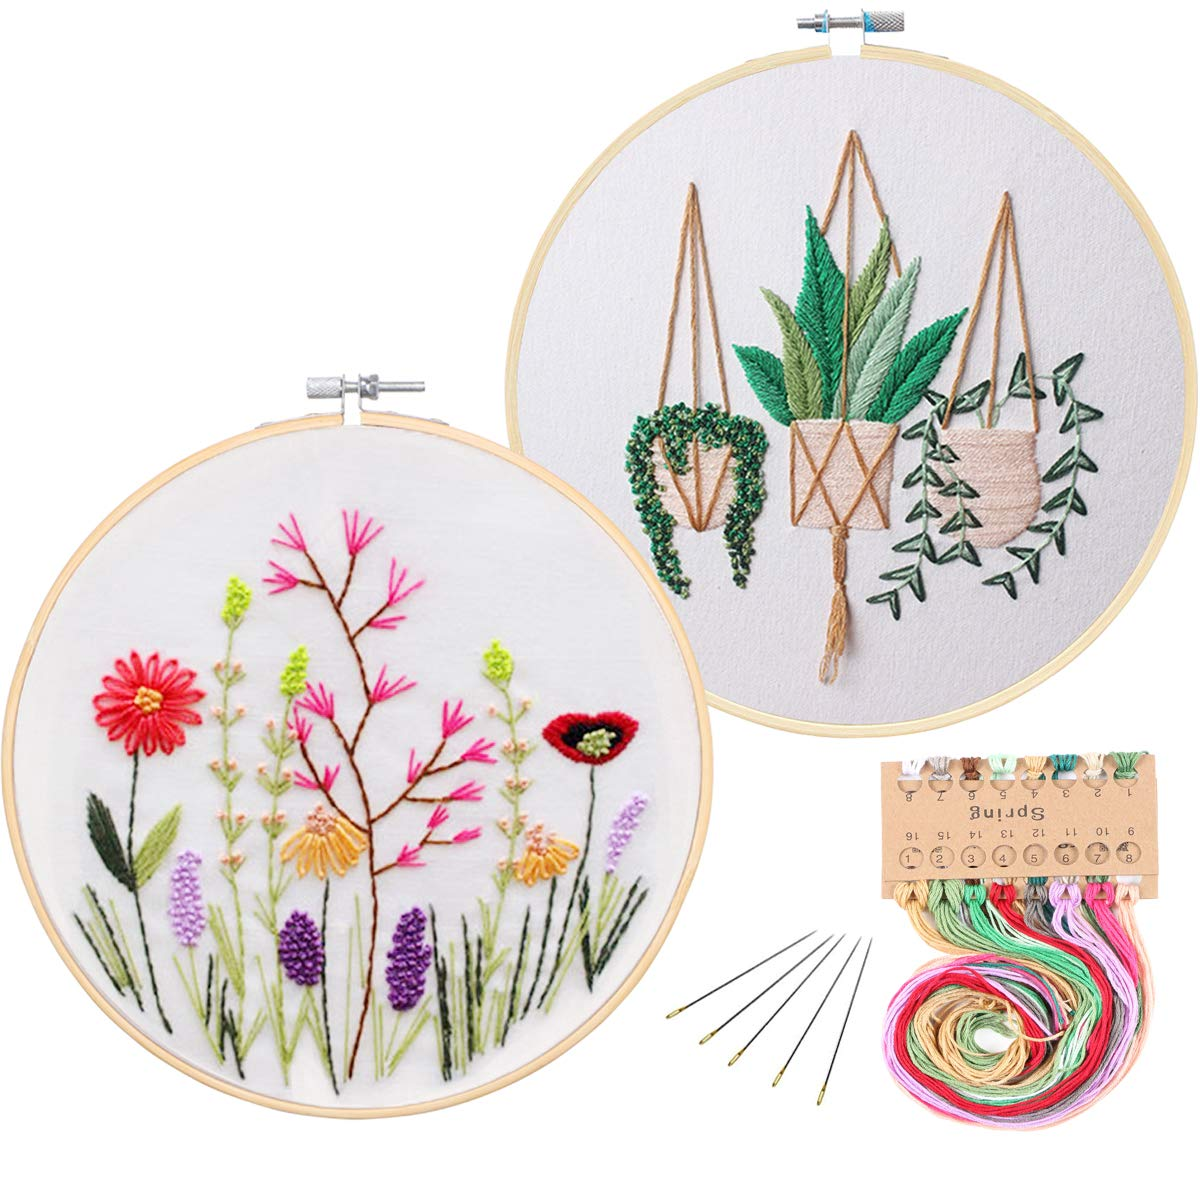 2 Pack Embroidery Starter Kit with Pattern, Kissbuty Full Range of Stamped  Embroidery Kit Including Embroidery Cloth with Pattern, Bamboo Embroidery